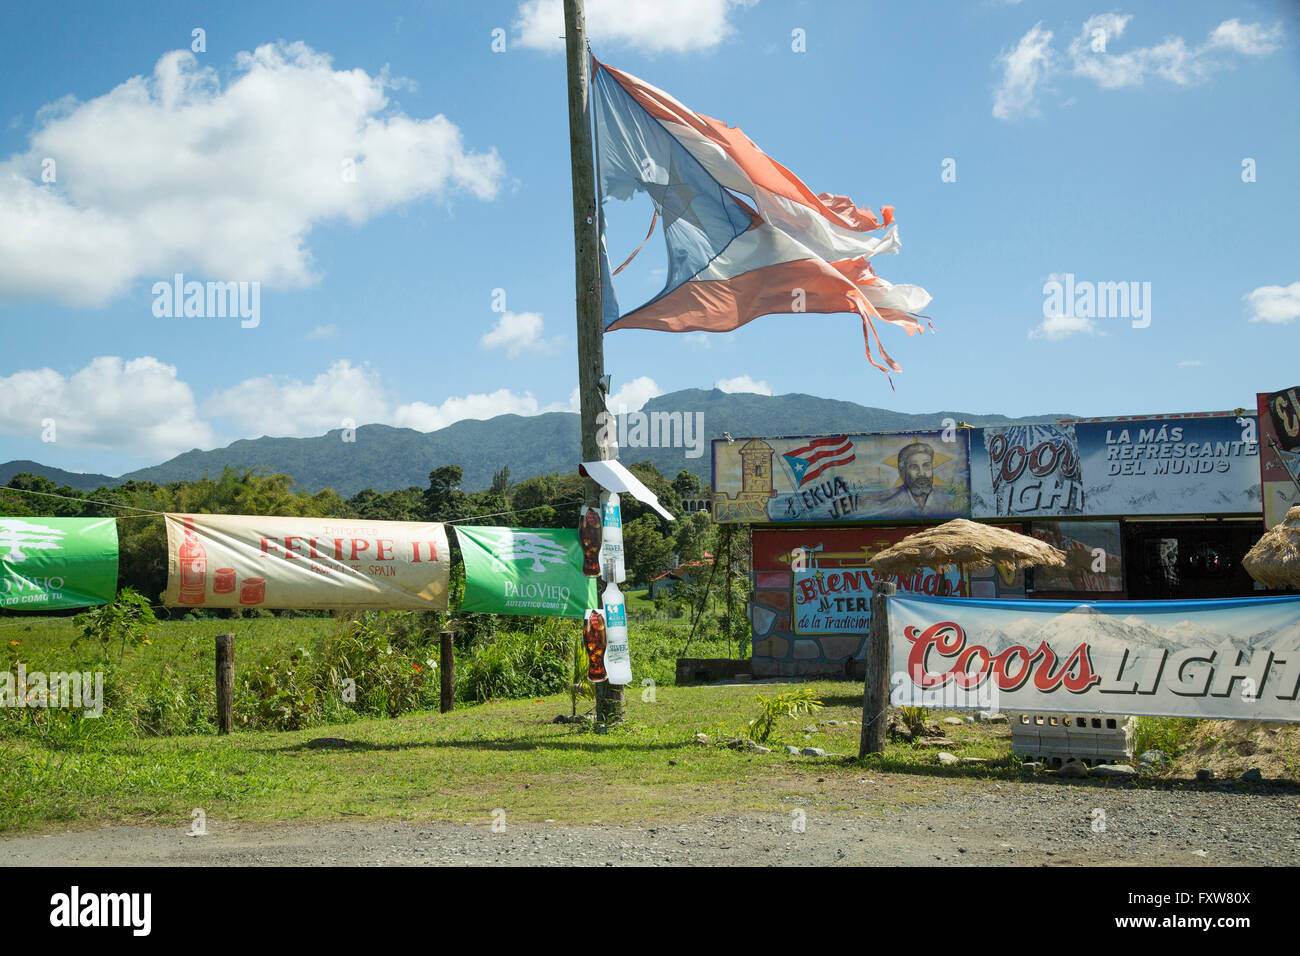 Flag of puerto rico stock photos flag of puerto rico stock worn and tattered flag in puerto rico ar a road side bar stock biocorpaavc Image collections